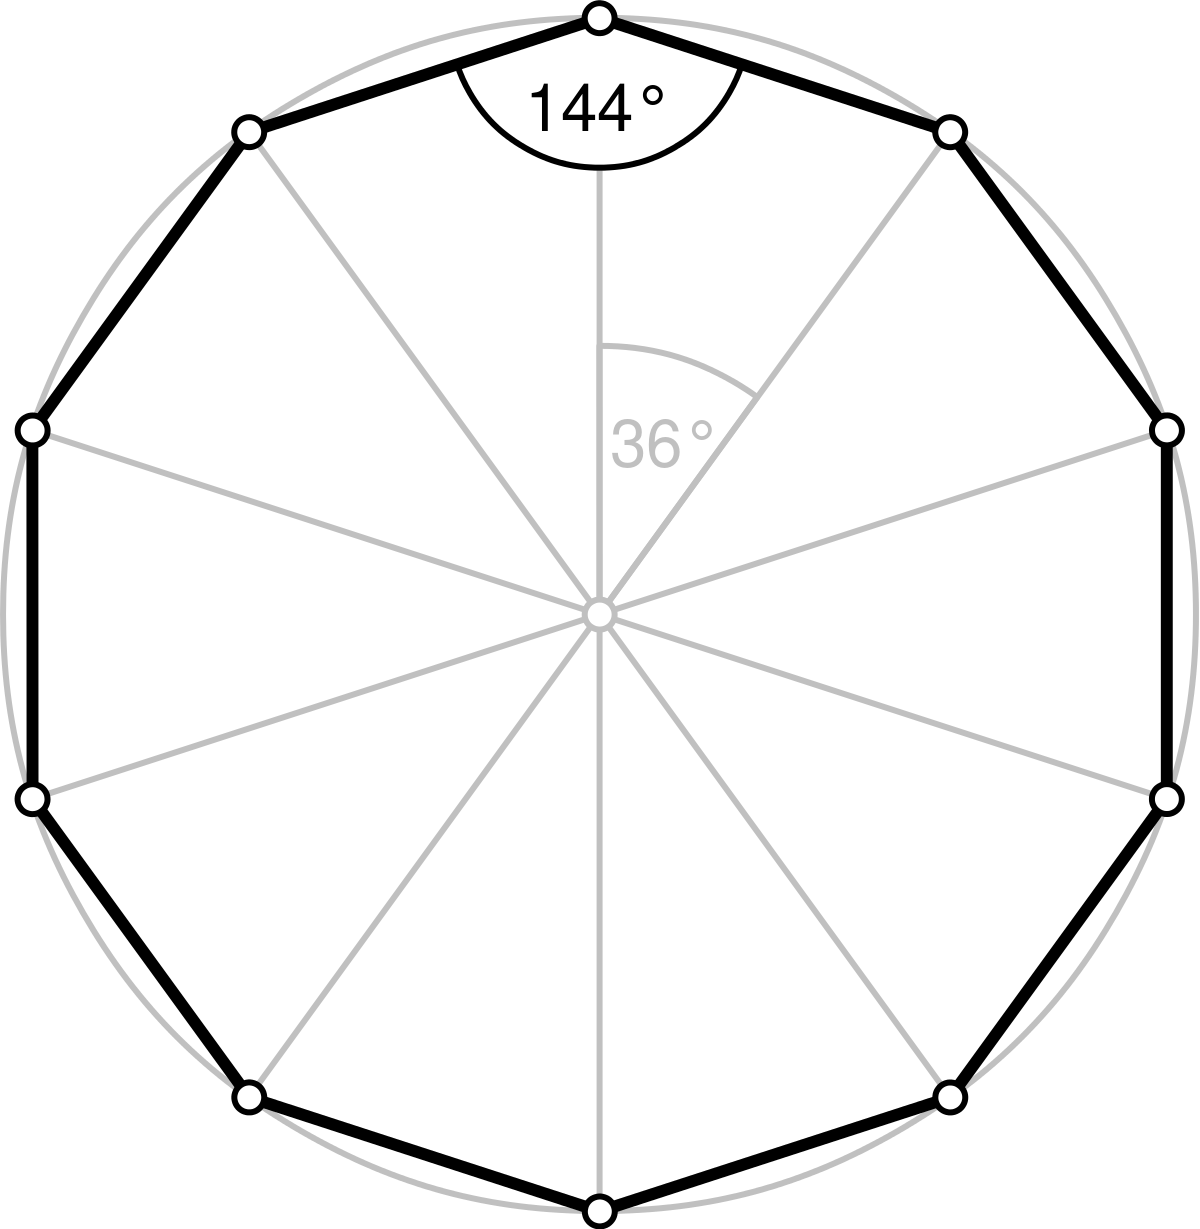 Polygons drawing easy. Decagon wikipedia